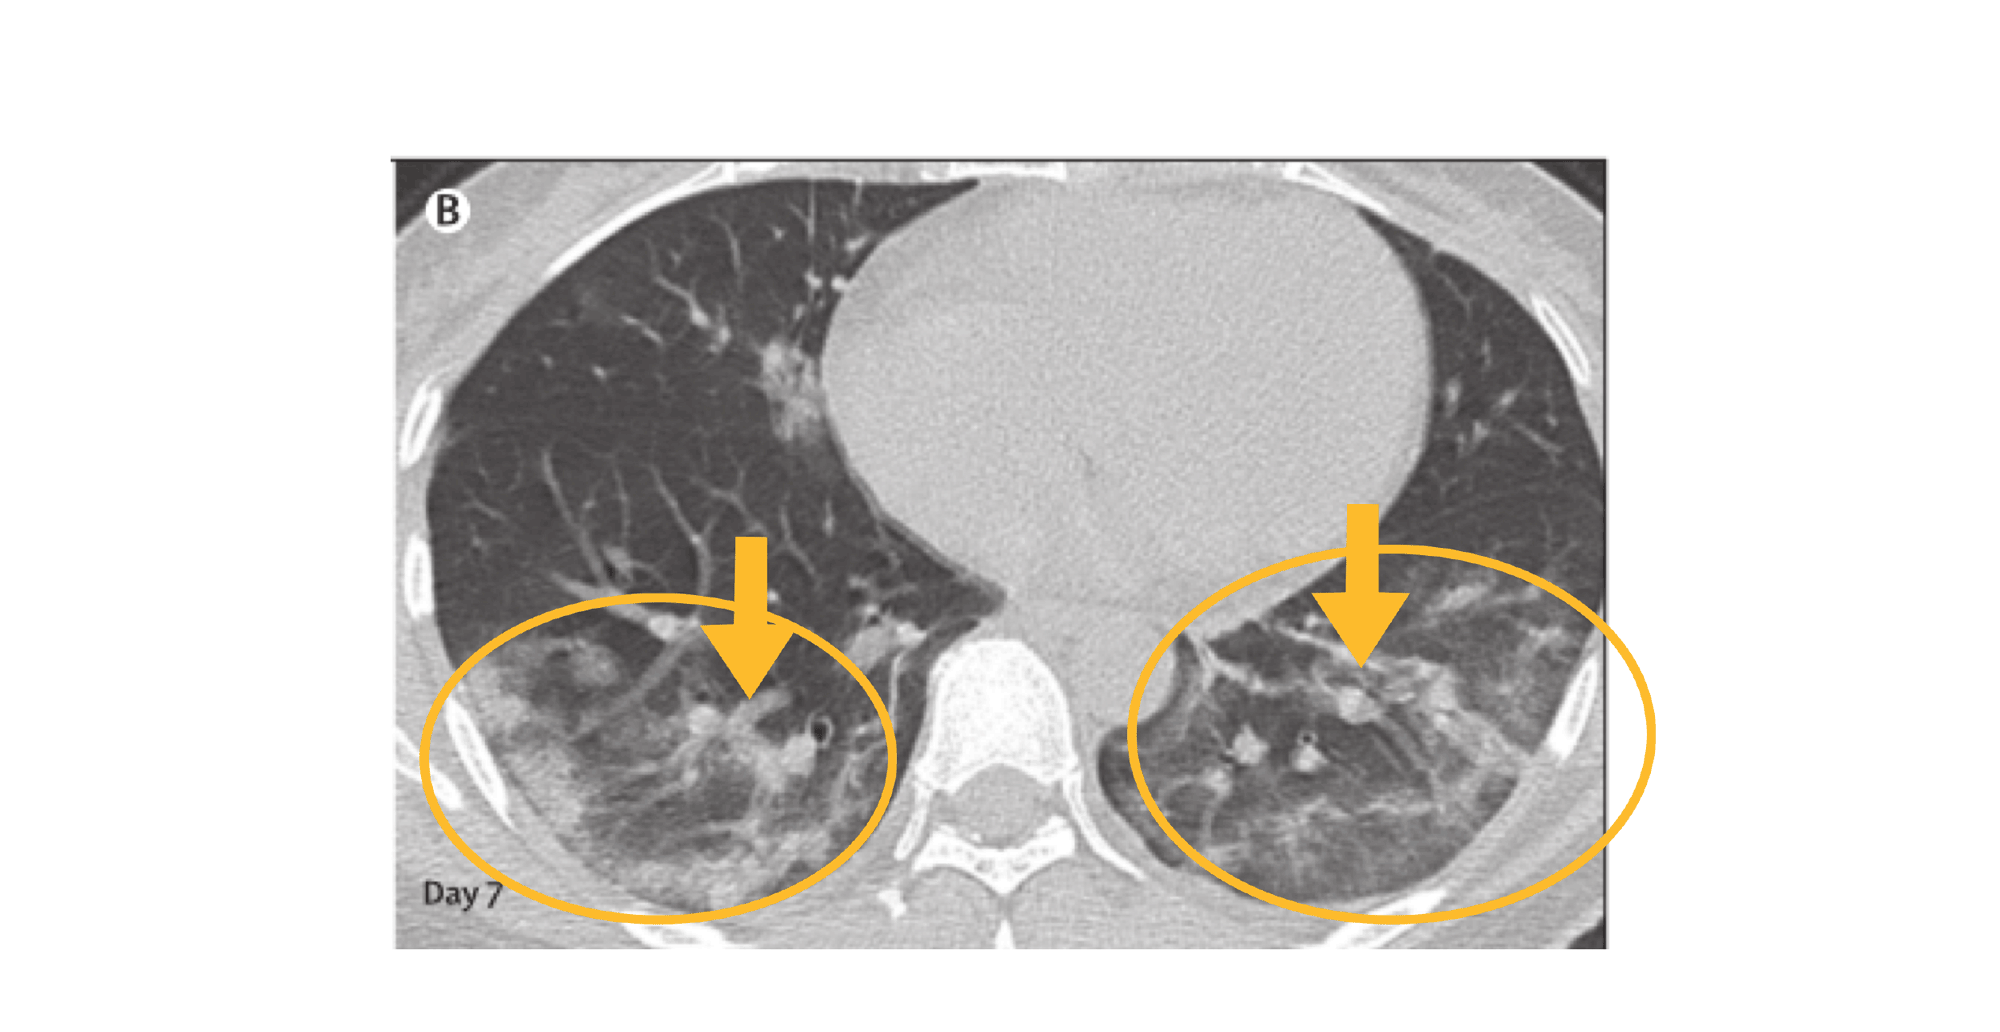 . COVID-19 CT image of chest in cross section with large heterogeneous bilateral lung lesions and internal bronchovascular enlargement.